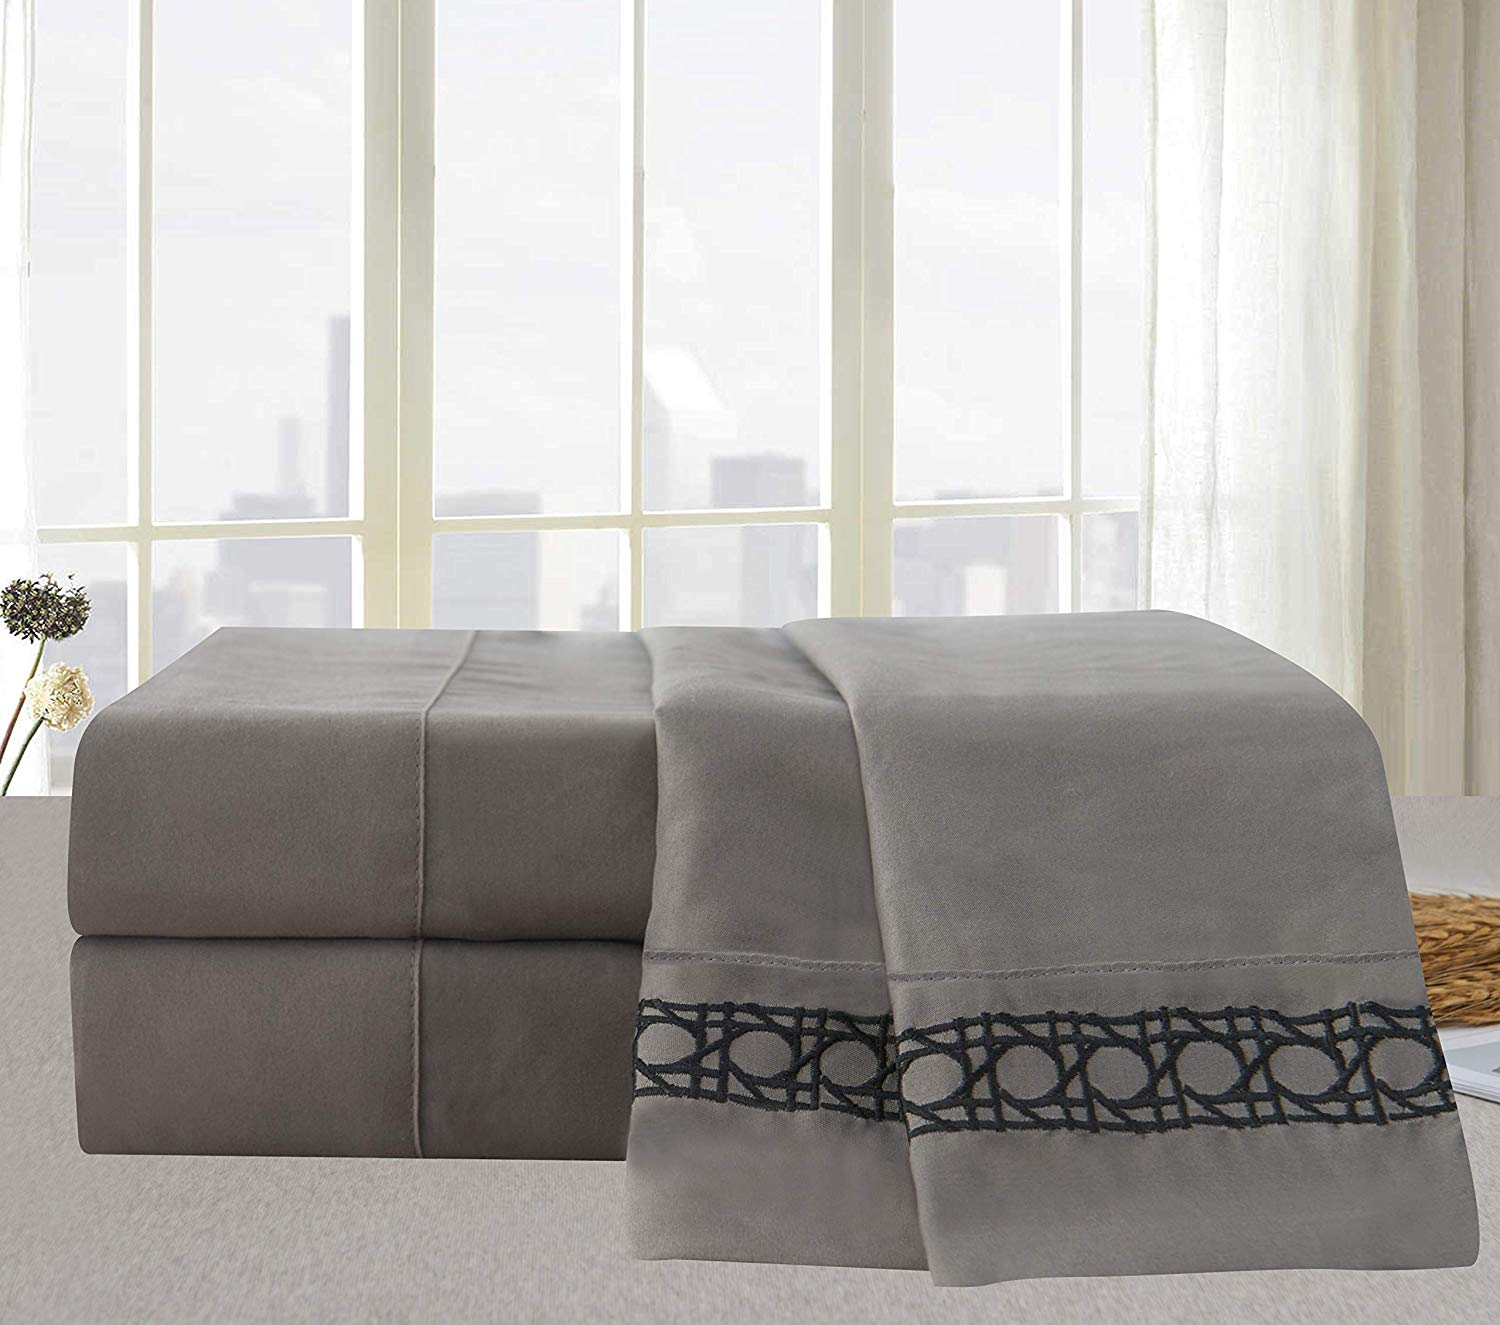 Beach Fitted Sheet Cover with All-Round Elastic Pocket in 4 Sizes